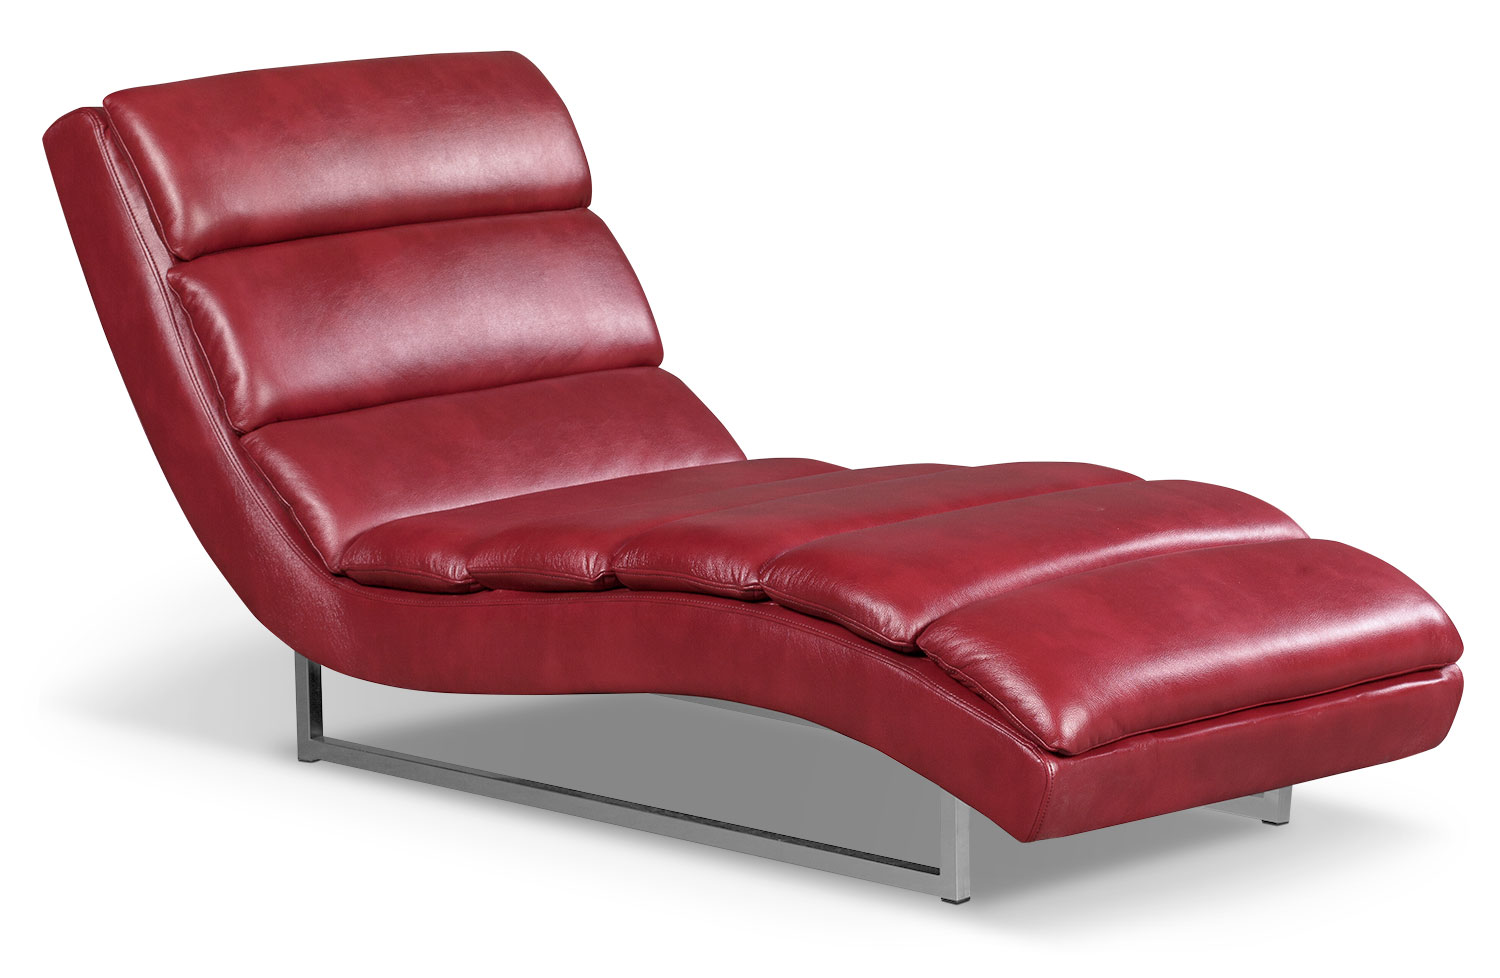 maddy leatherlook fabric chaise – red  the brick - hover to zoom